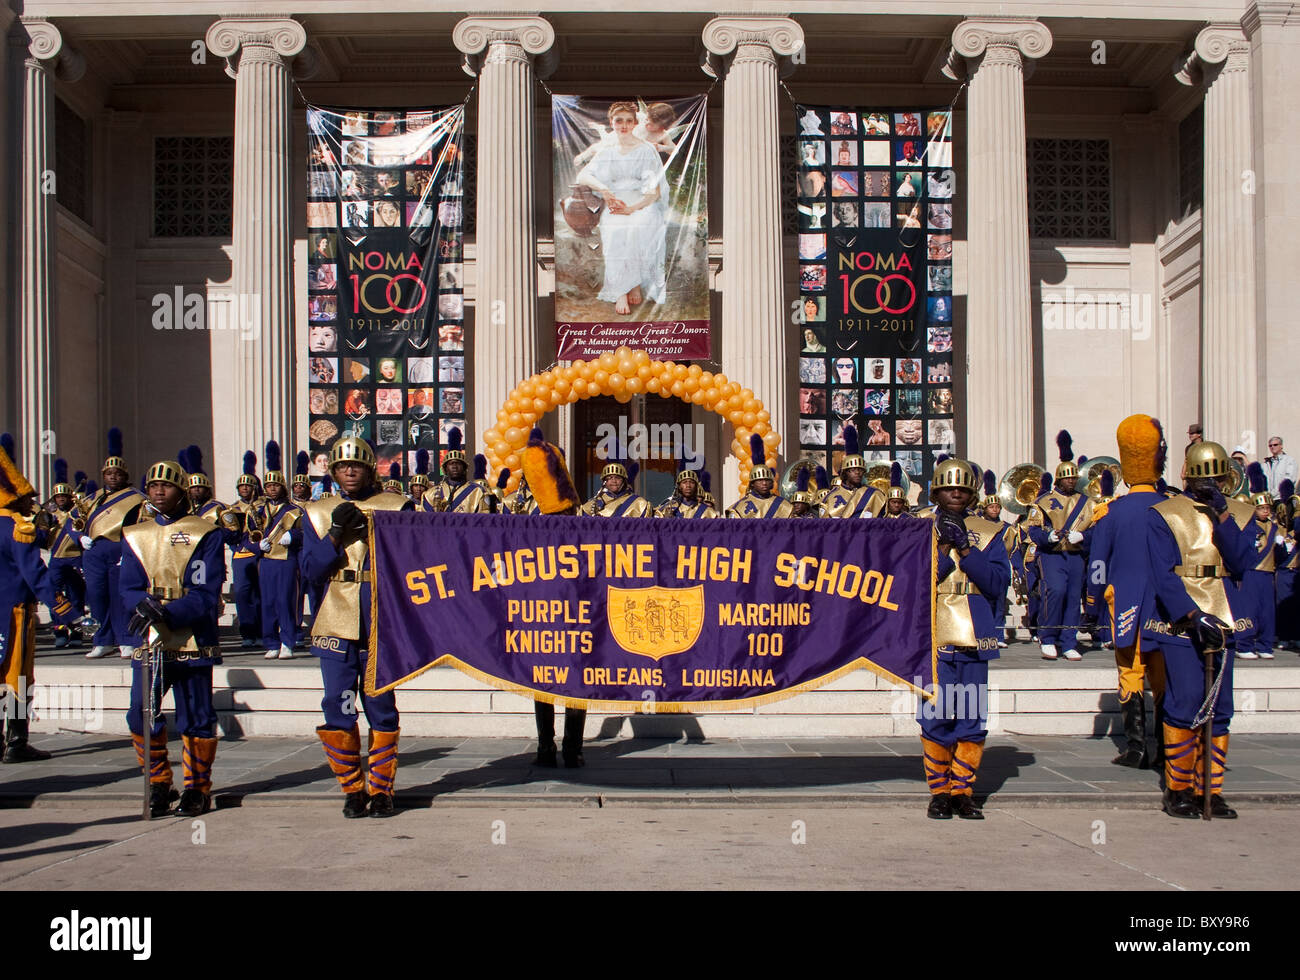 St. Augustine high school marching band commemorating the 100 year anniversary of the New Orleans Museum of Art. - Stock Image